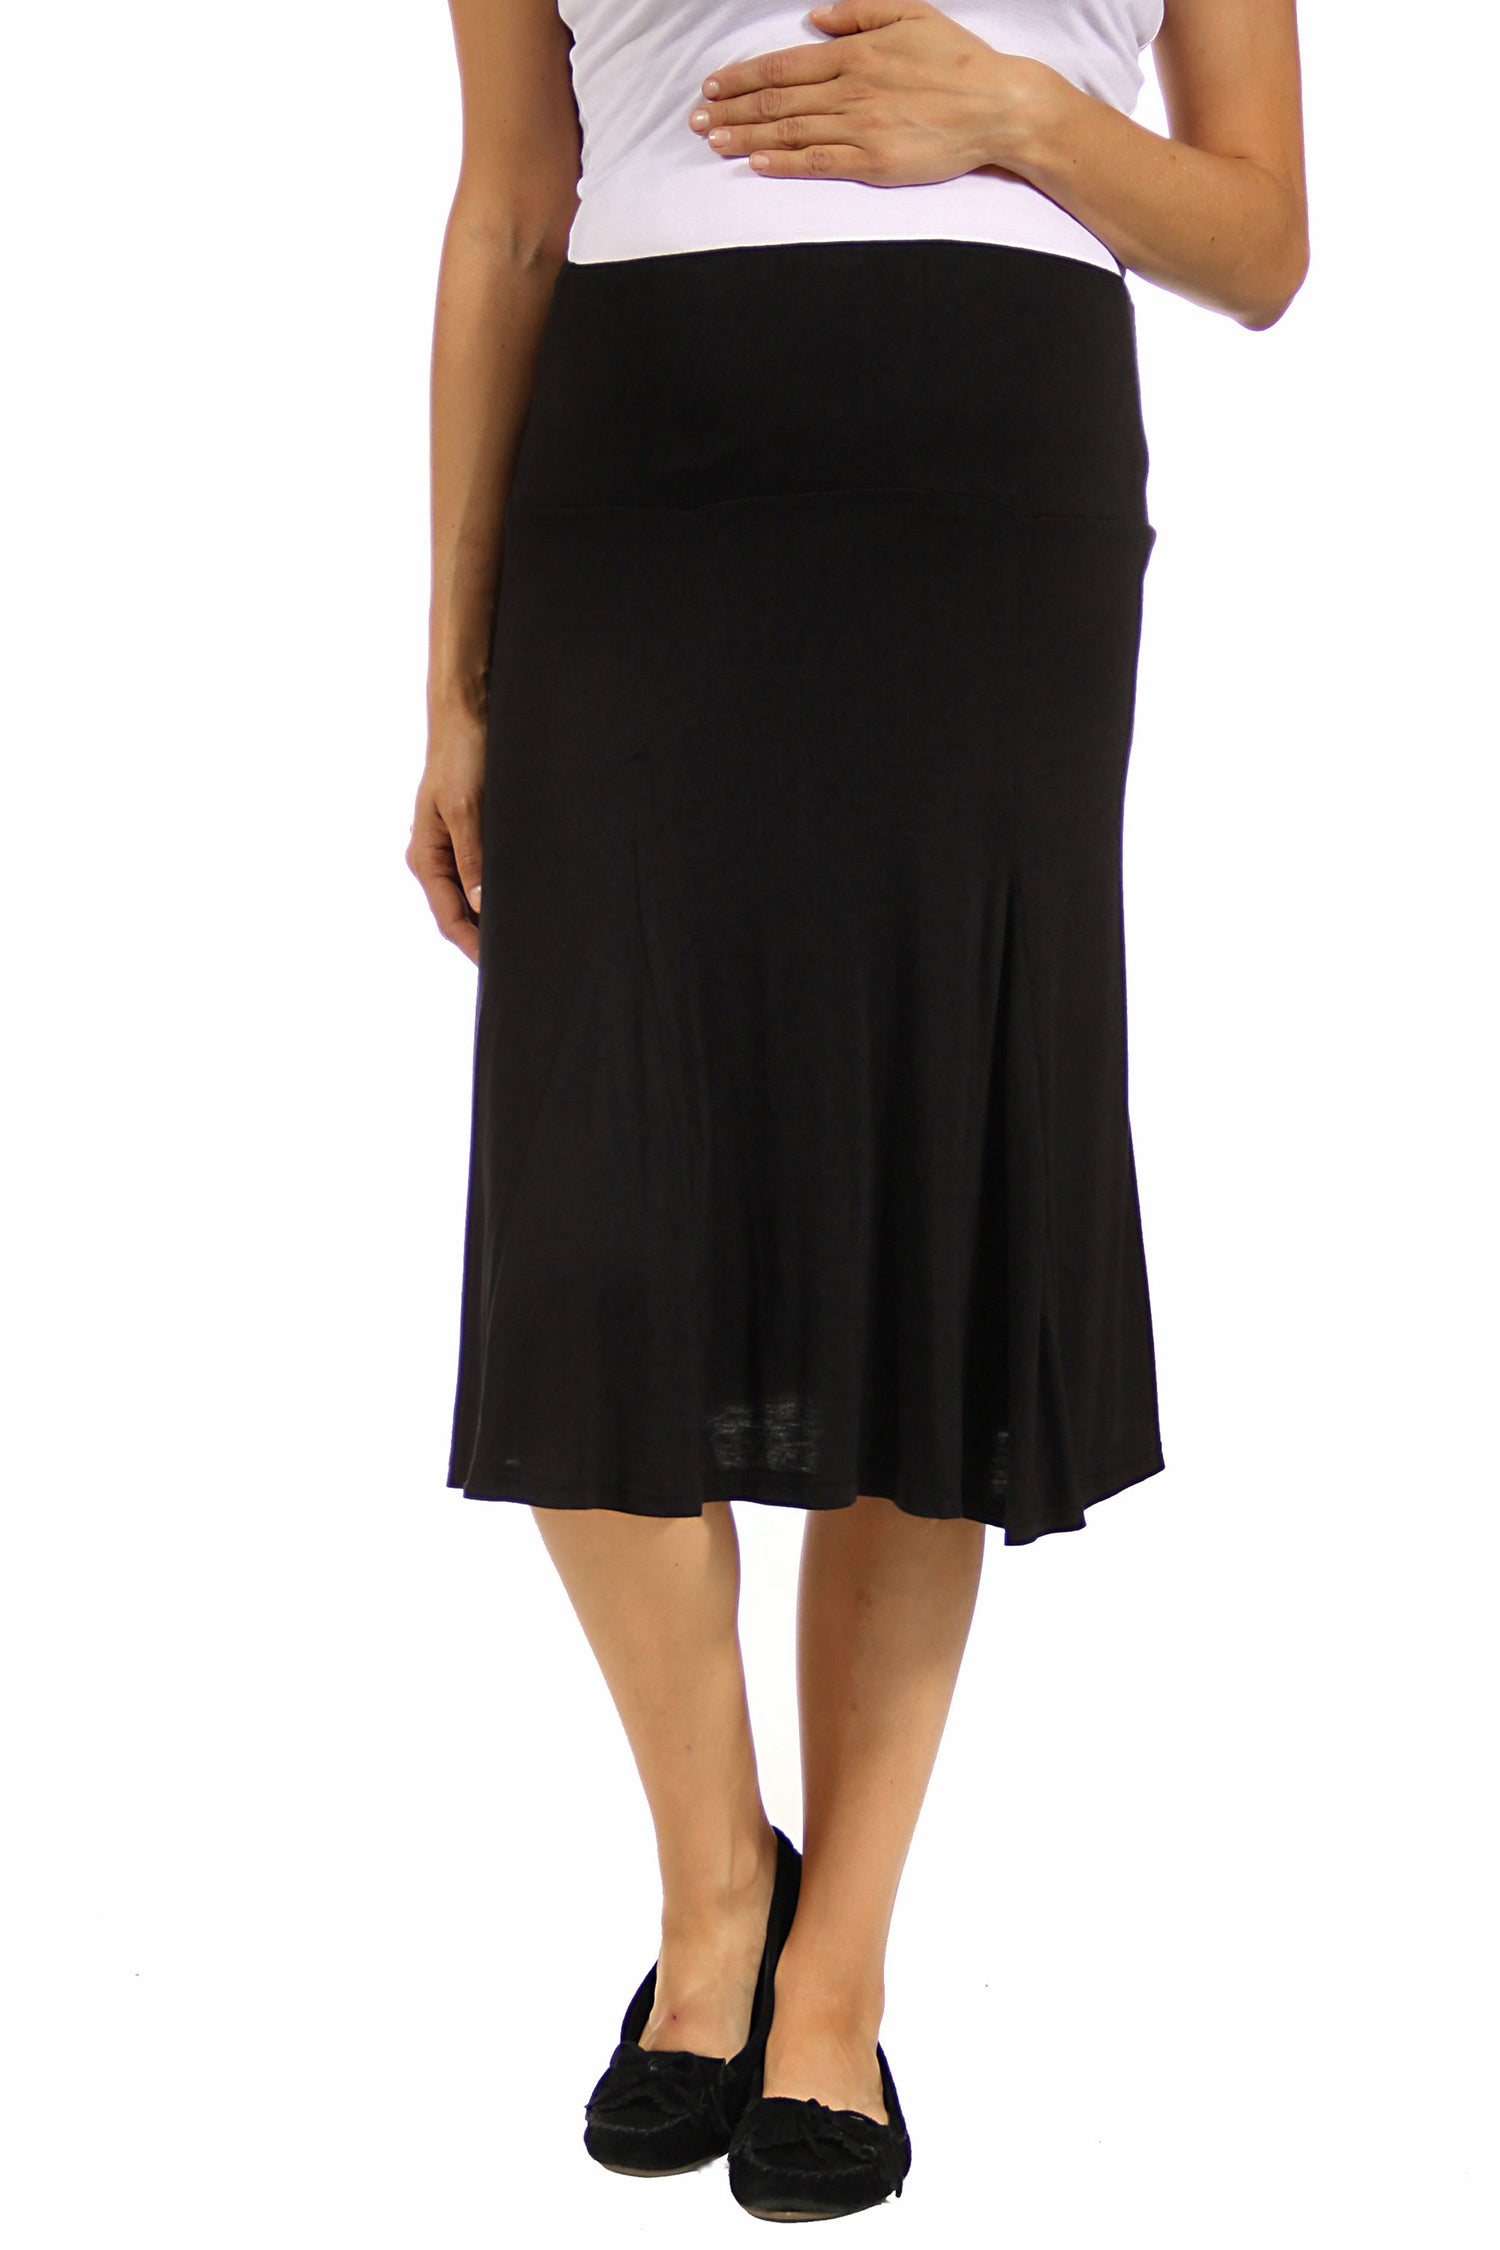 24seven Comfort Apparel Comfortable Black Maternity Midi Skirt-SKIRT-24Seven Comfort Apparel-BLACK-S-24/7 Comfort Apparel